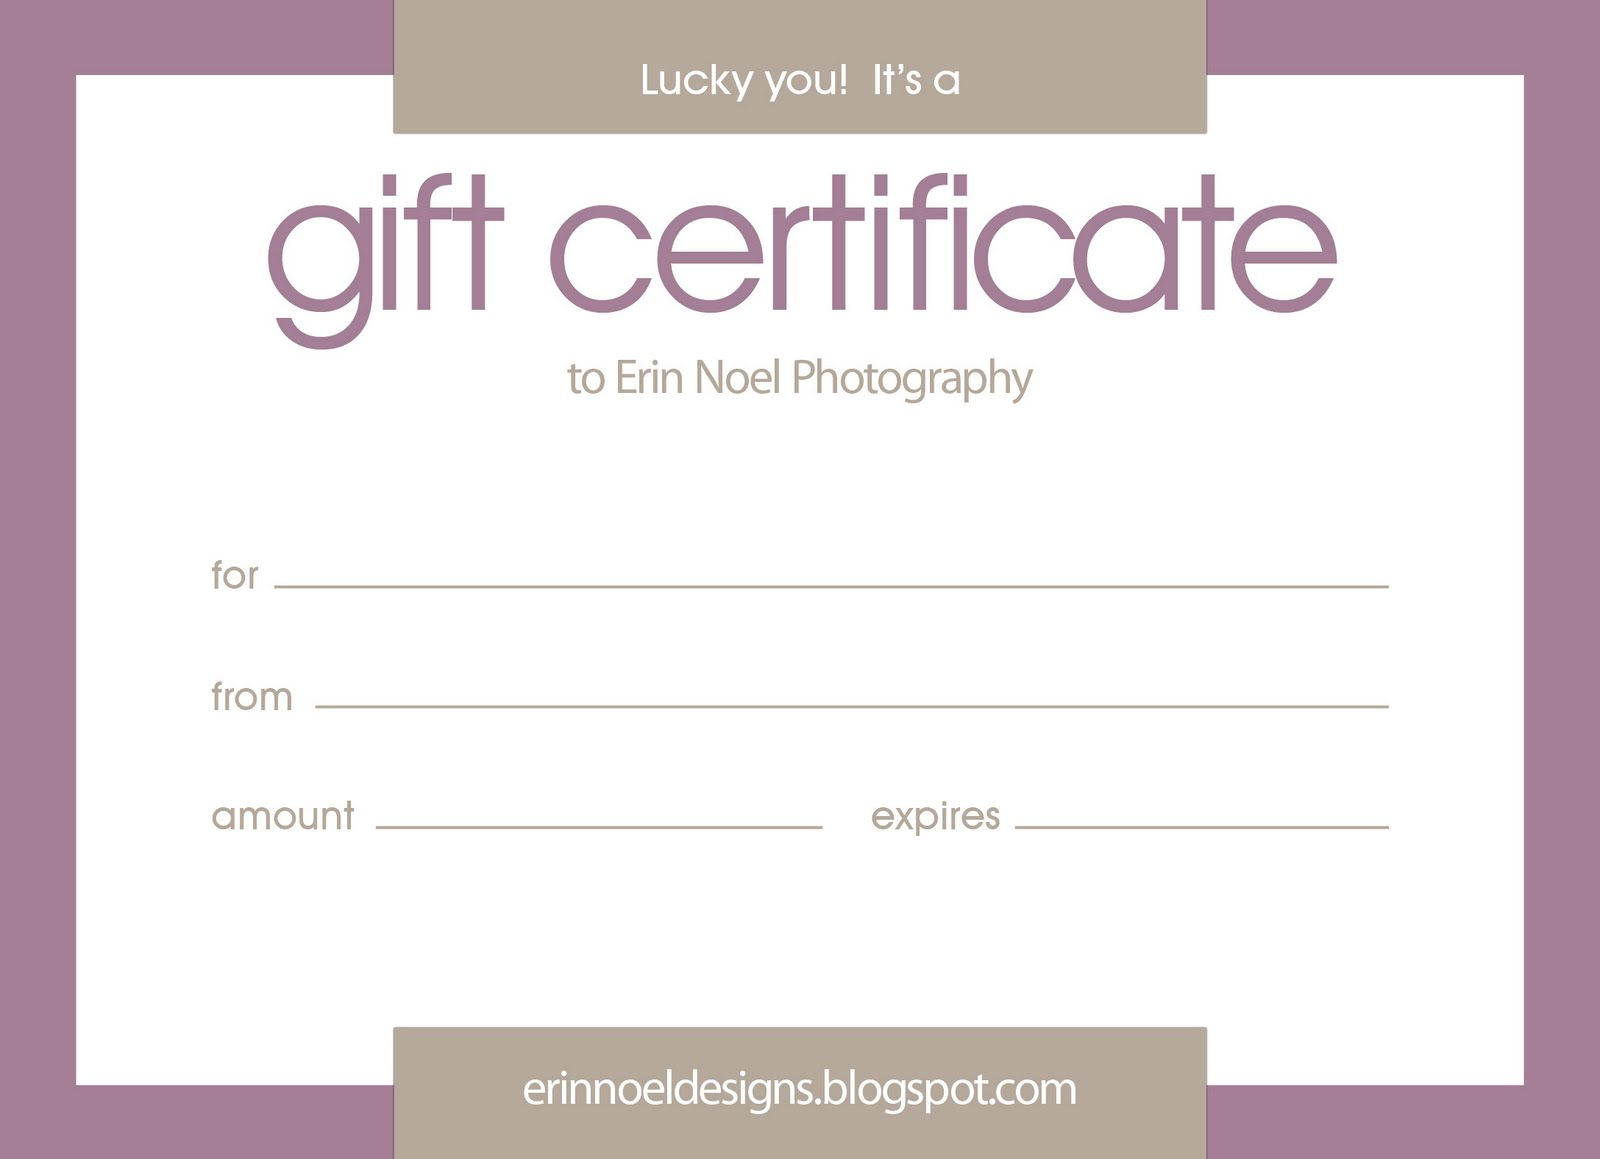 Erin noel designs gift certificates for Design a gift certificate template free